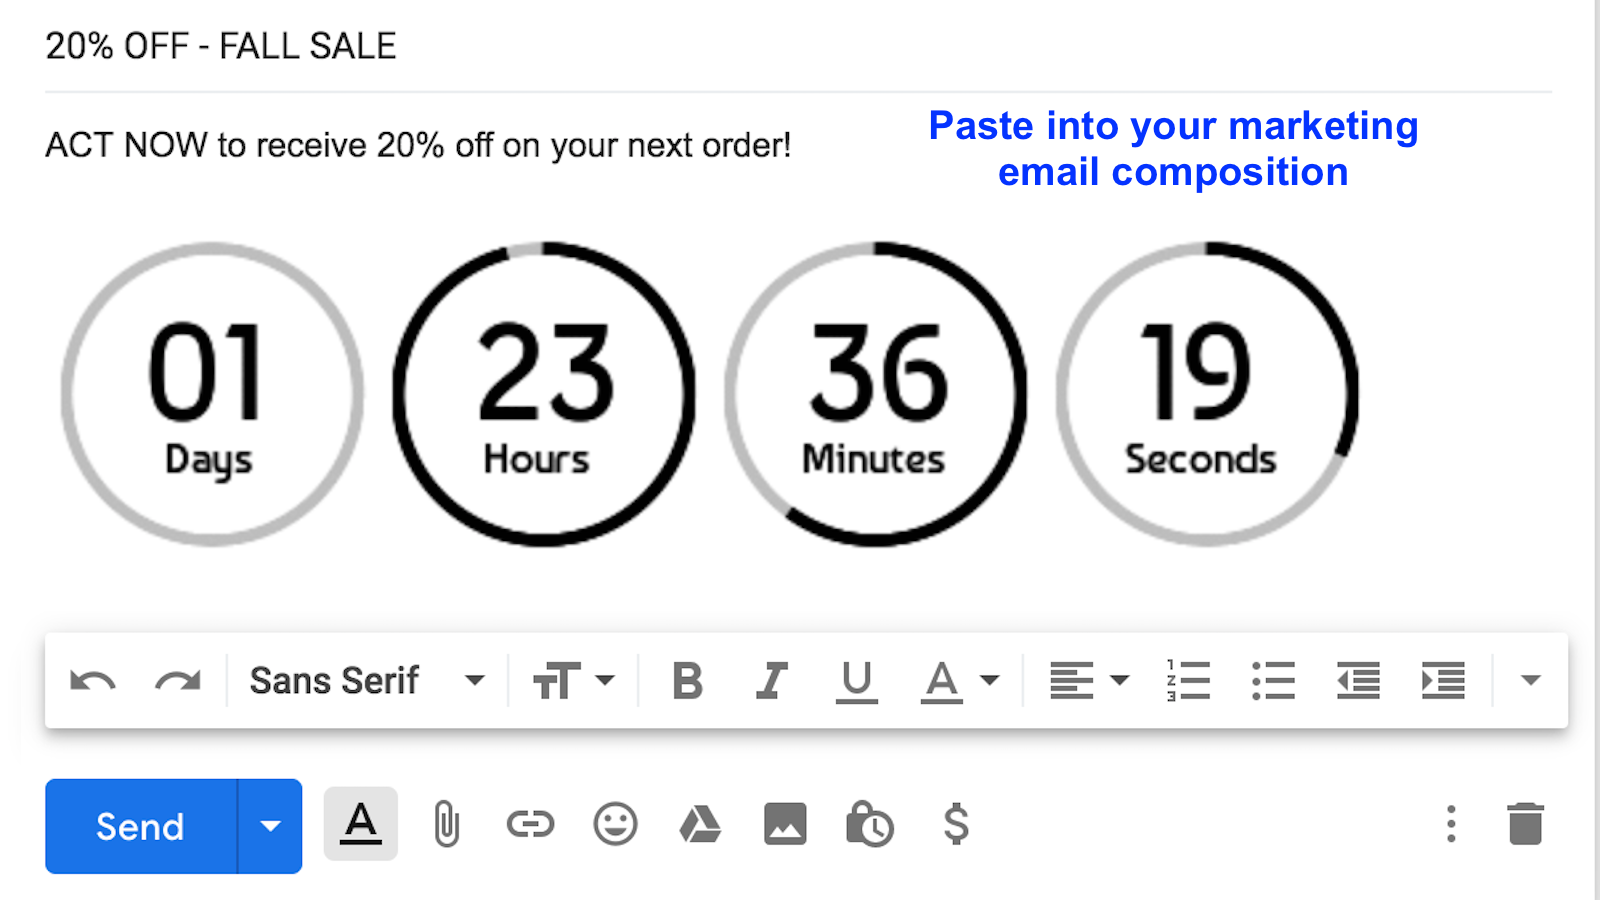 Paste into email composition